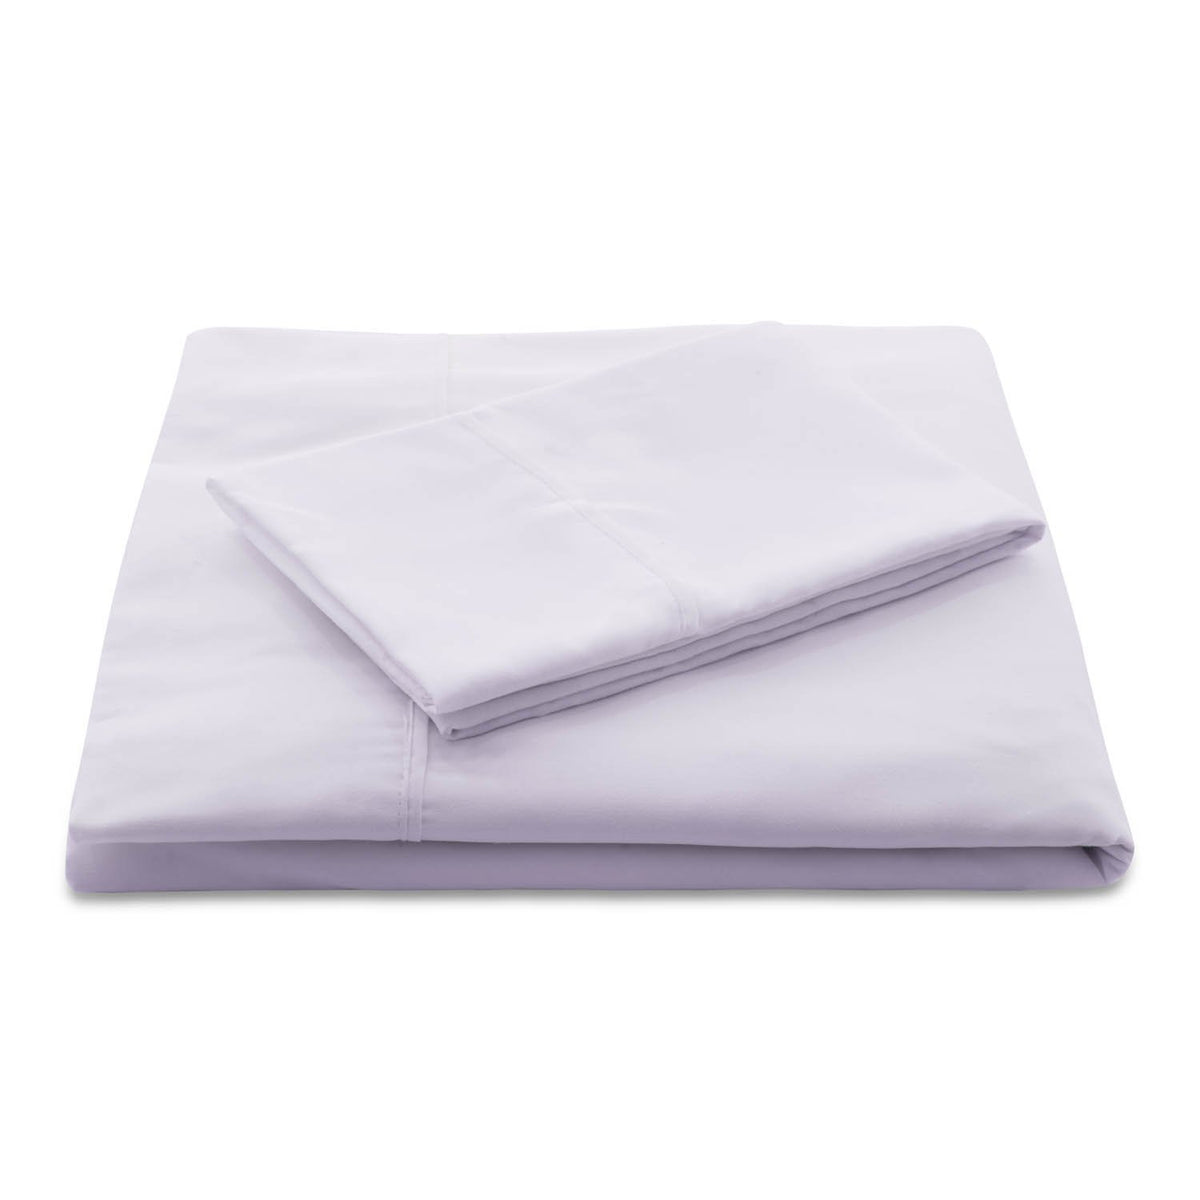 WOVEN Brushed Microfiber Sheet Set Sheet Set Malouf Twin Lilac